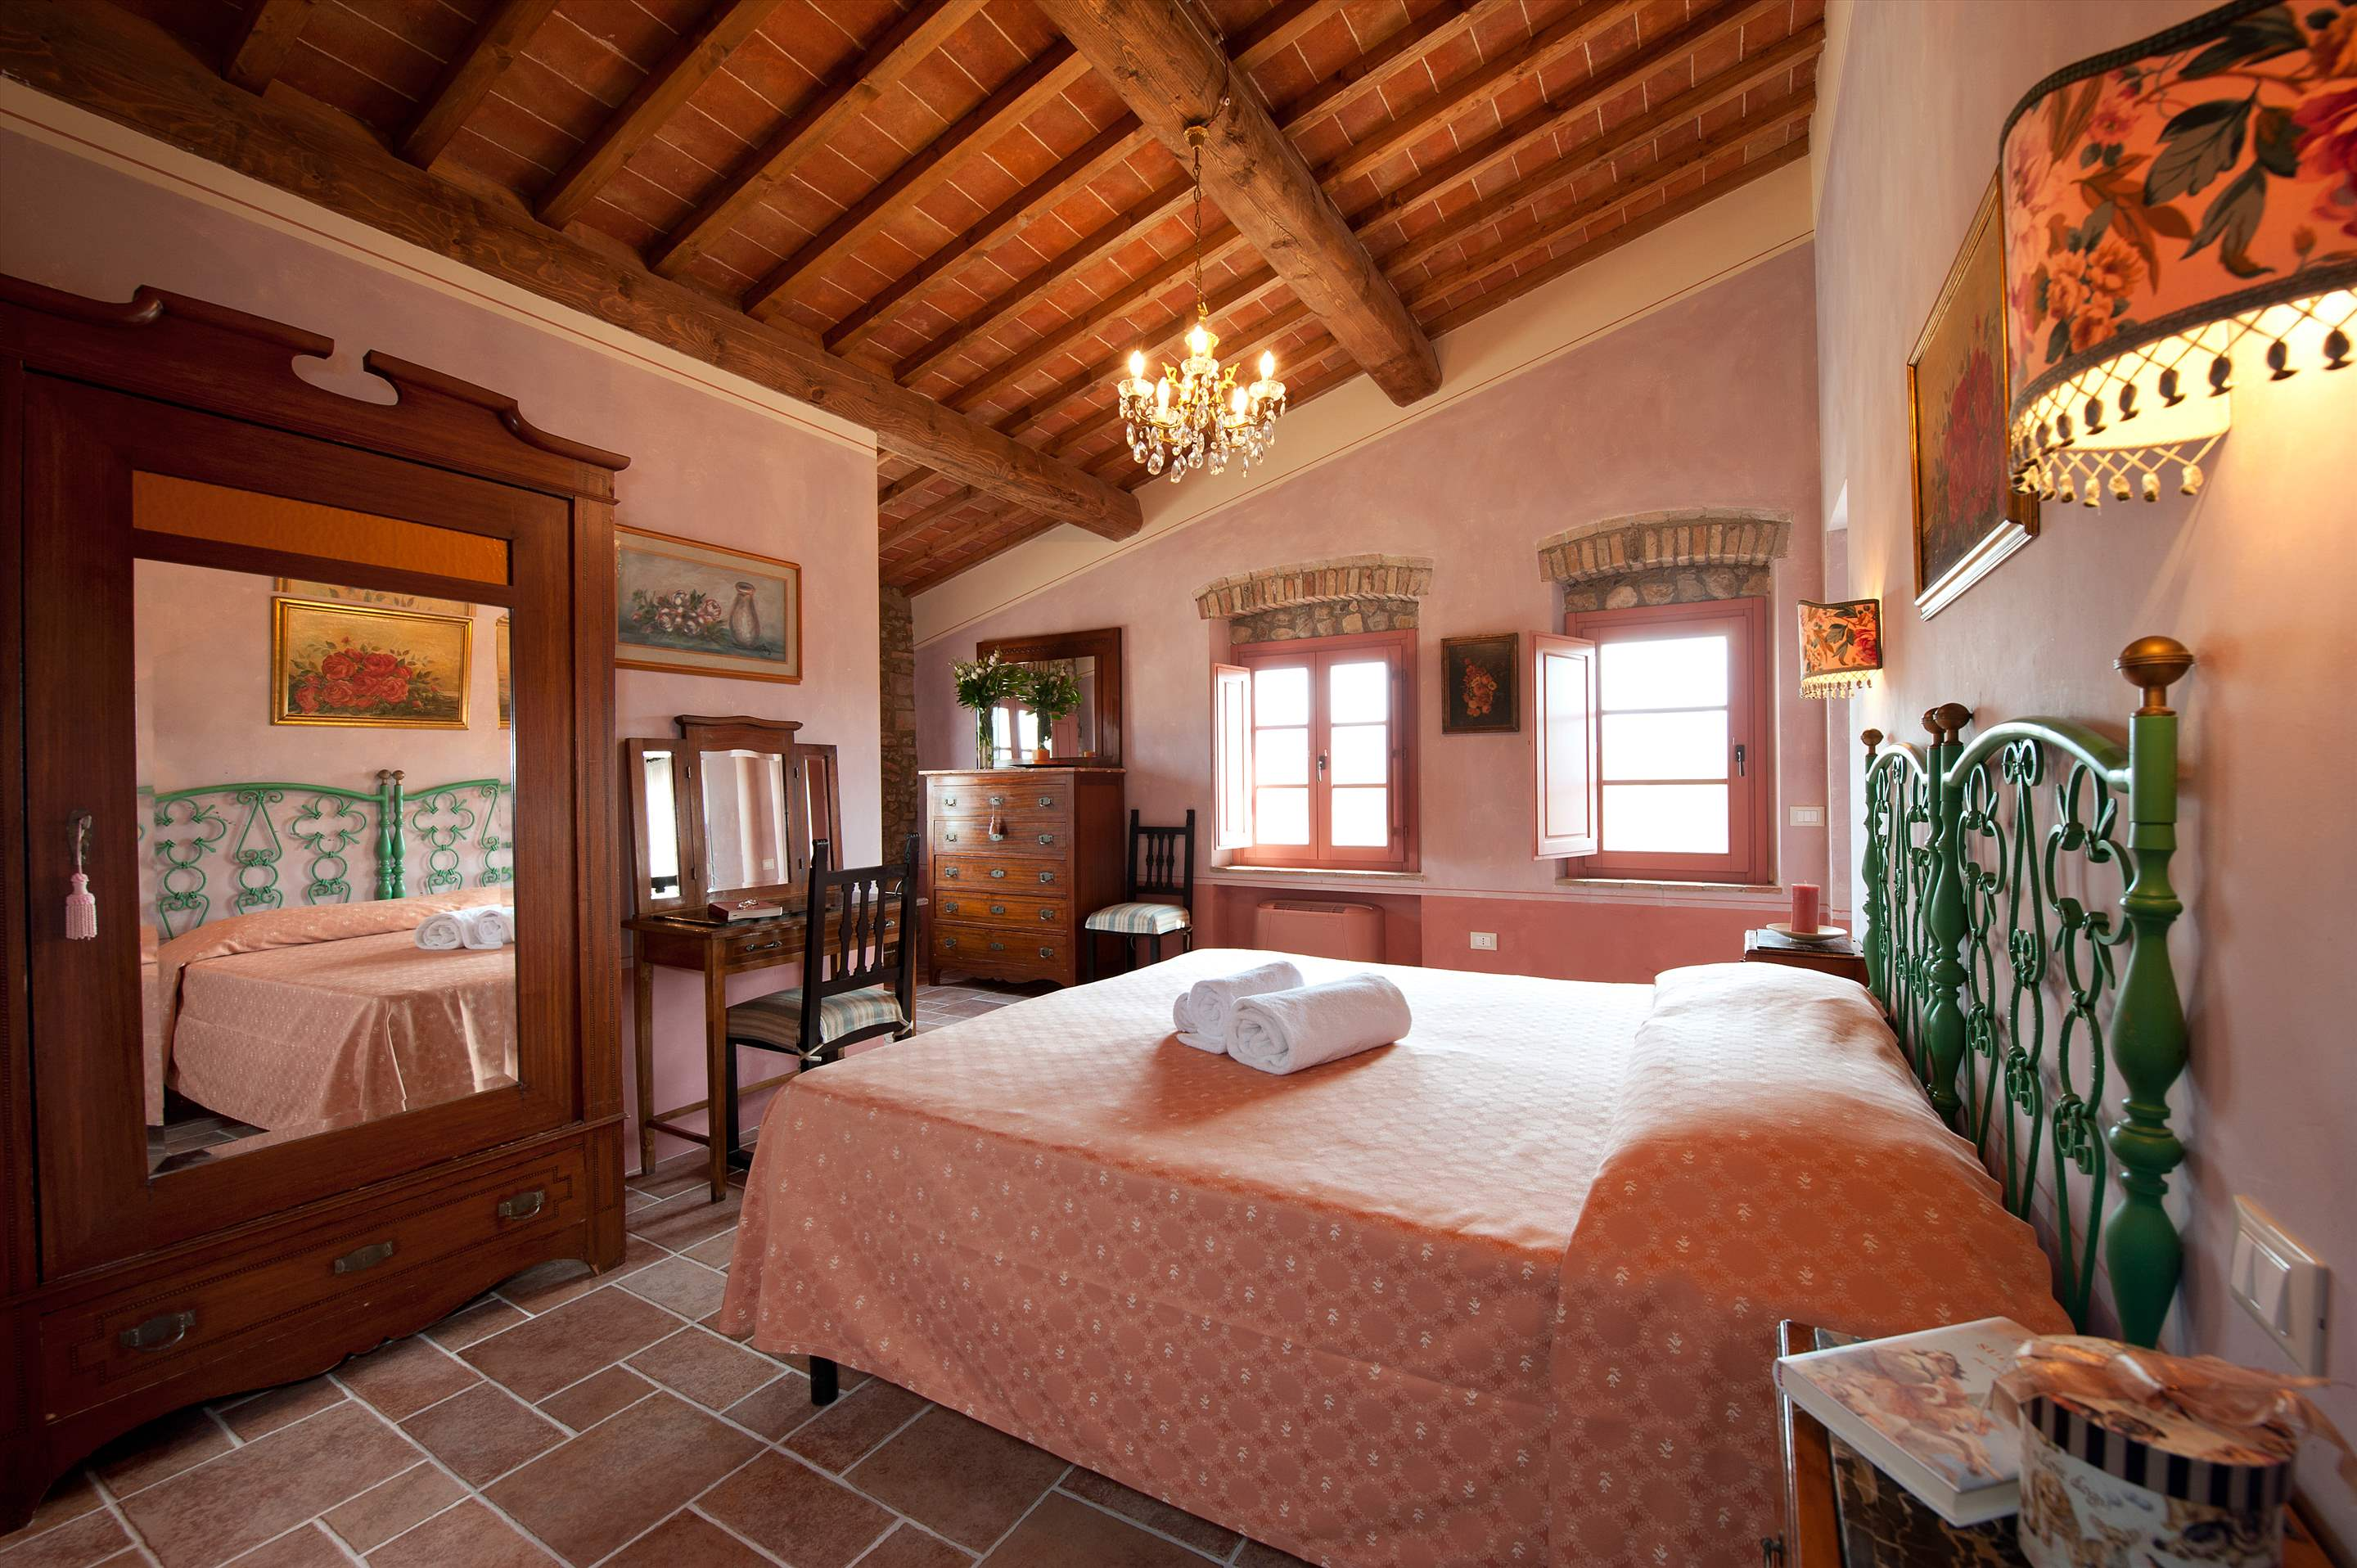 Podere I Gotti, 5 bedroom villa in Tuscany Coast, Tuscany Photo #18